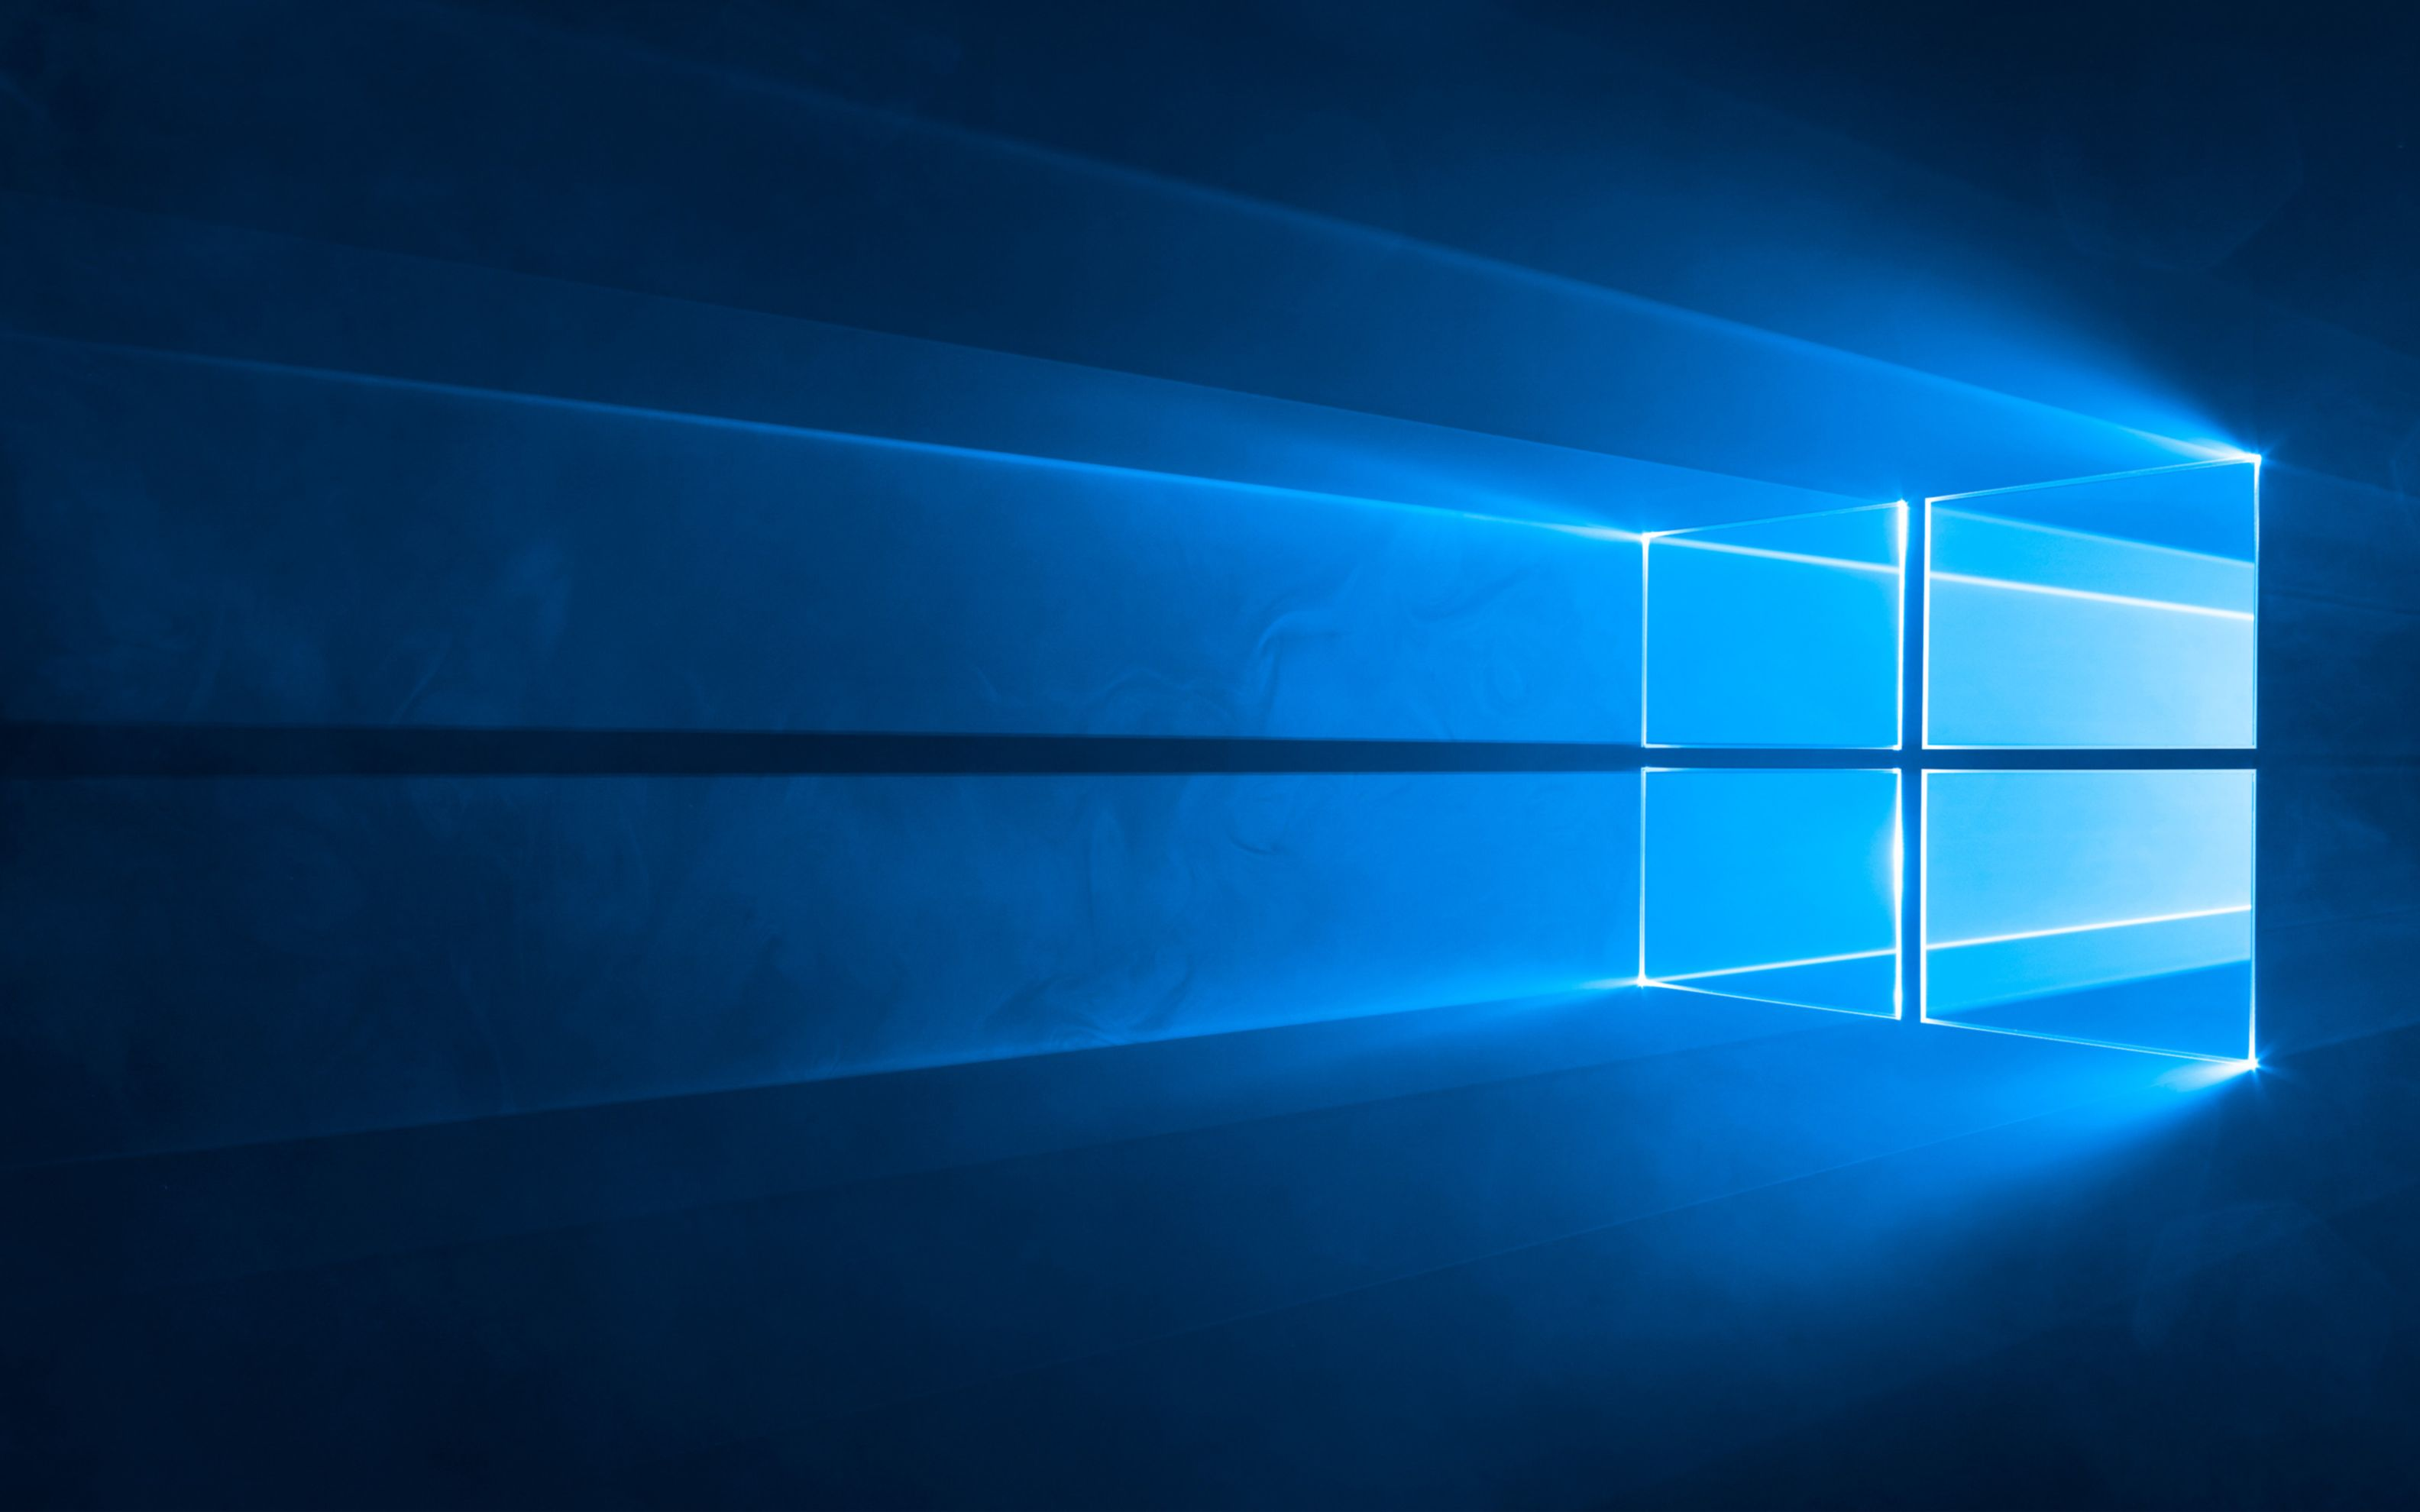 Download free HD Windows 10 Wide Wallpaper, image